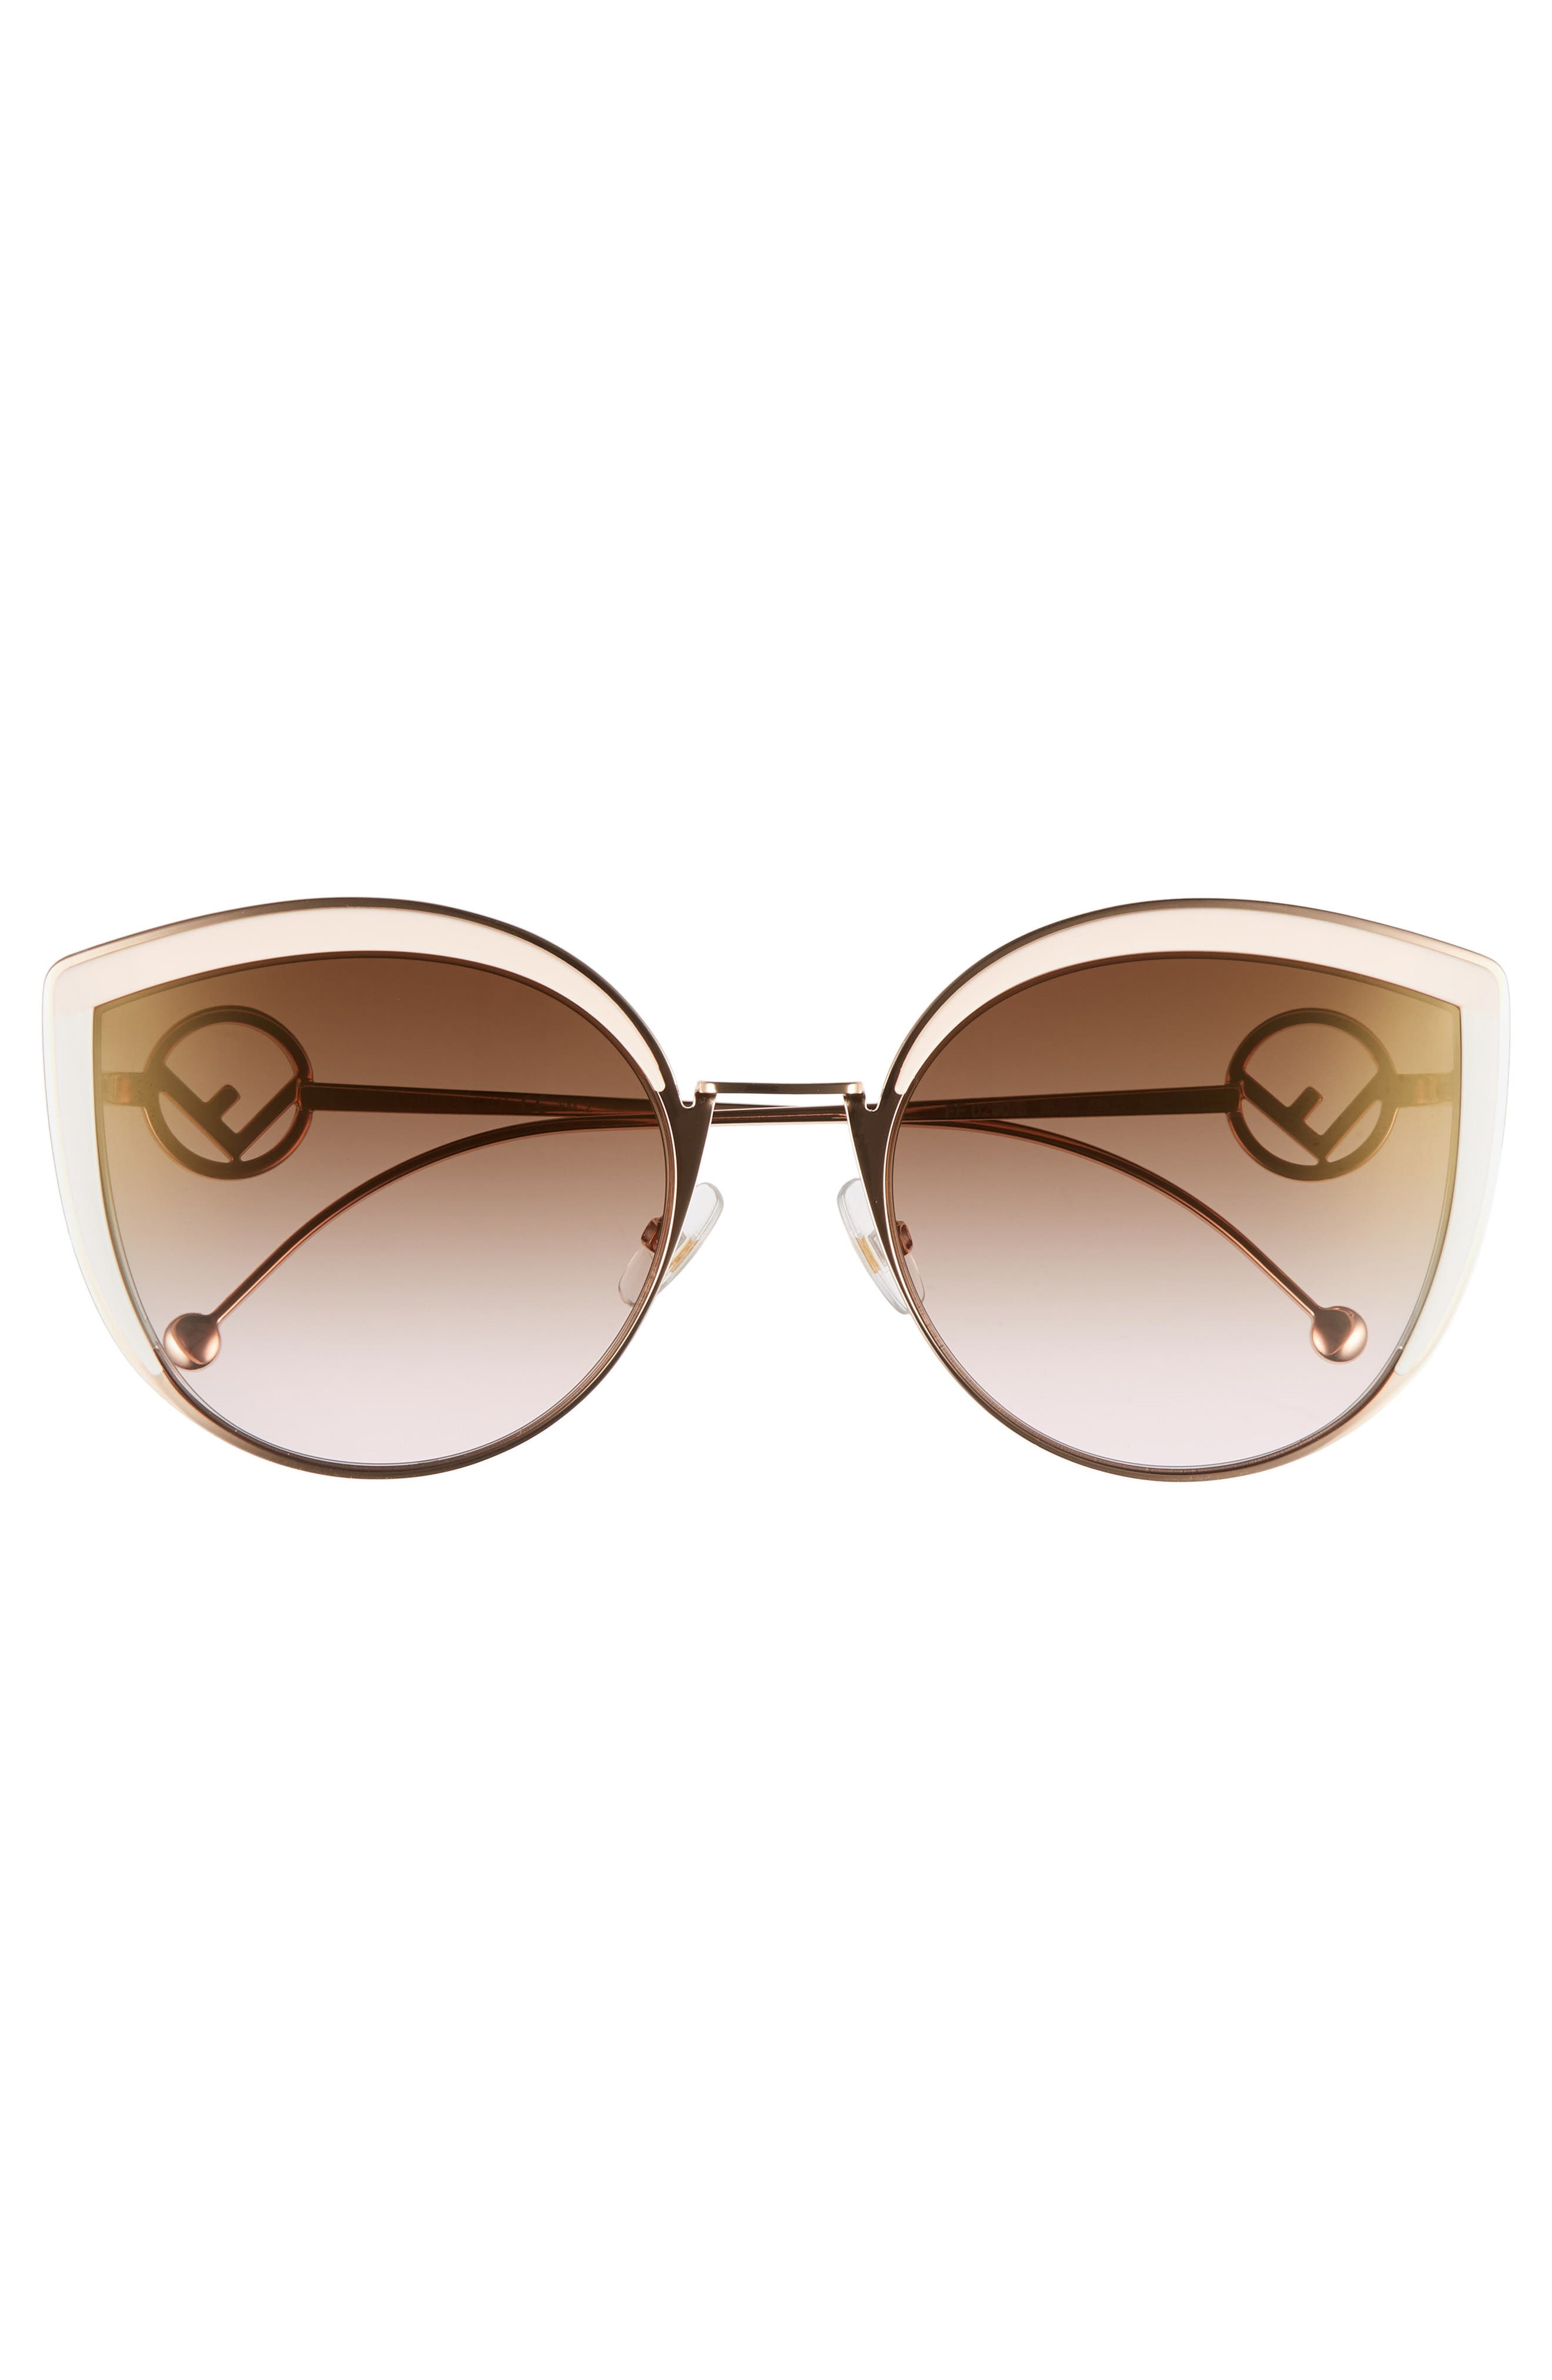 58mm Metal Butterfly Sunglasses,                             Alternate thumbnail 3, color,                             Pink